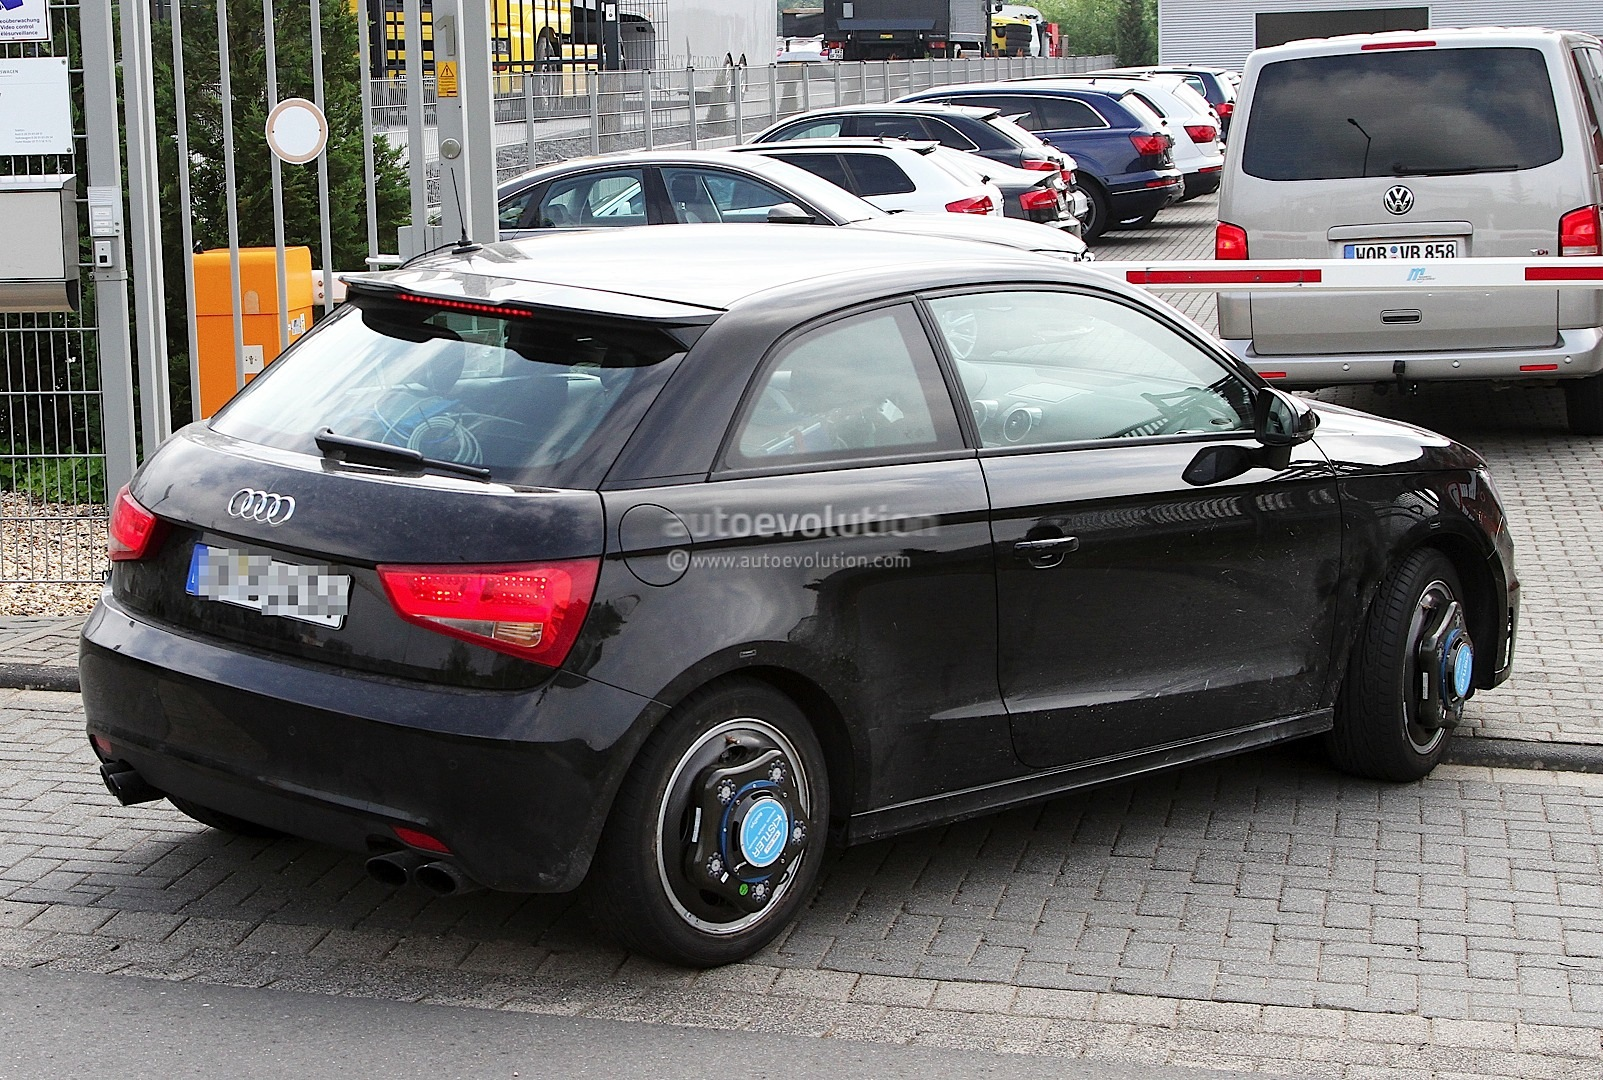 Audi S1 Spotted Testing In Latest Spyshots 1080p 4 Rs246 Com